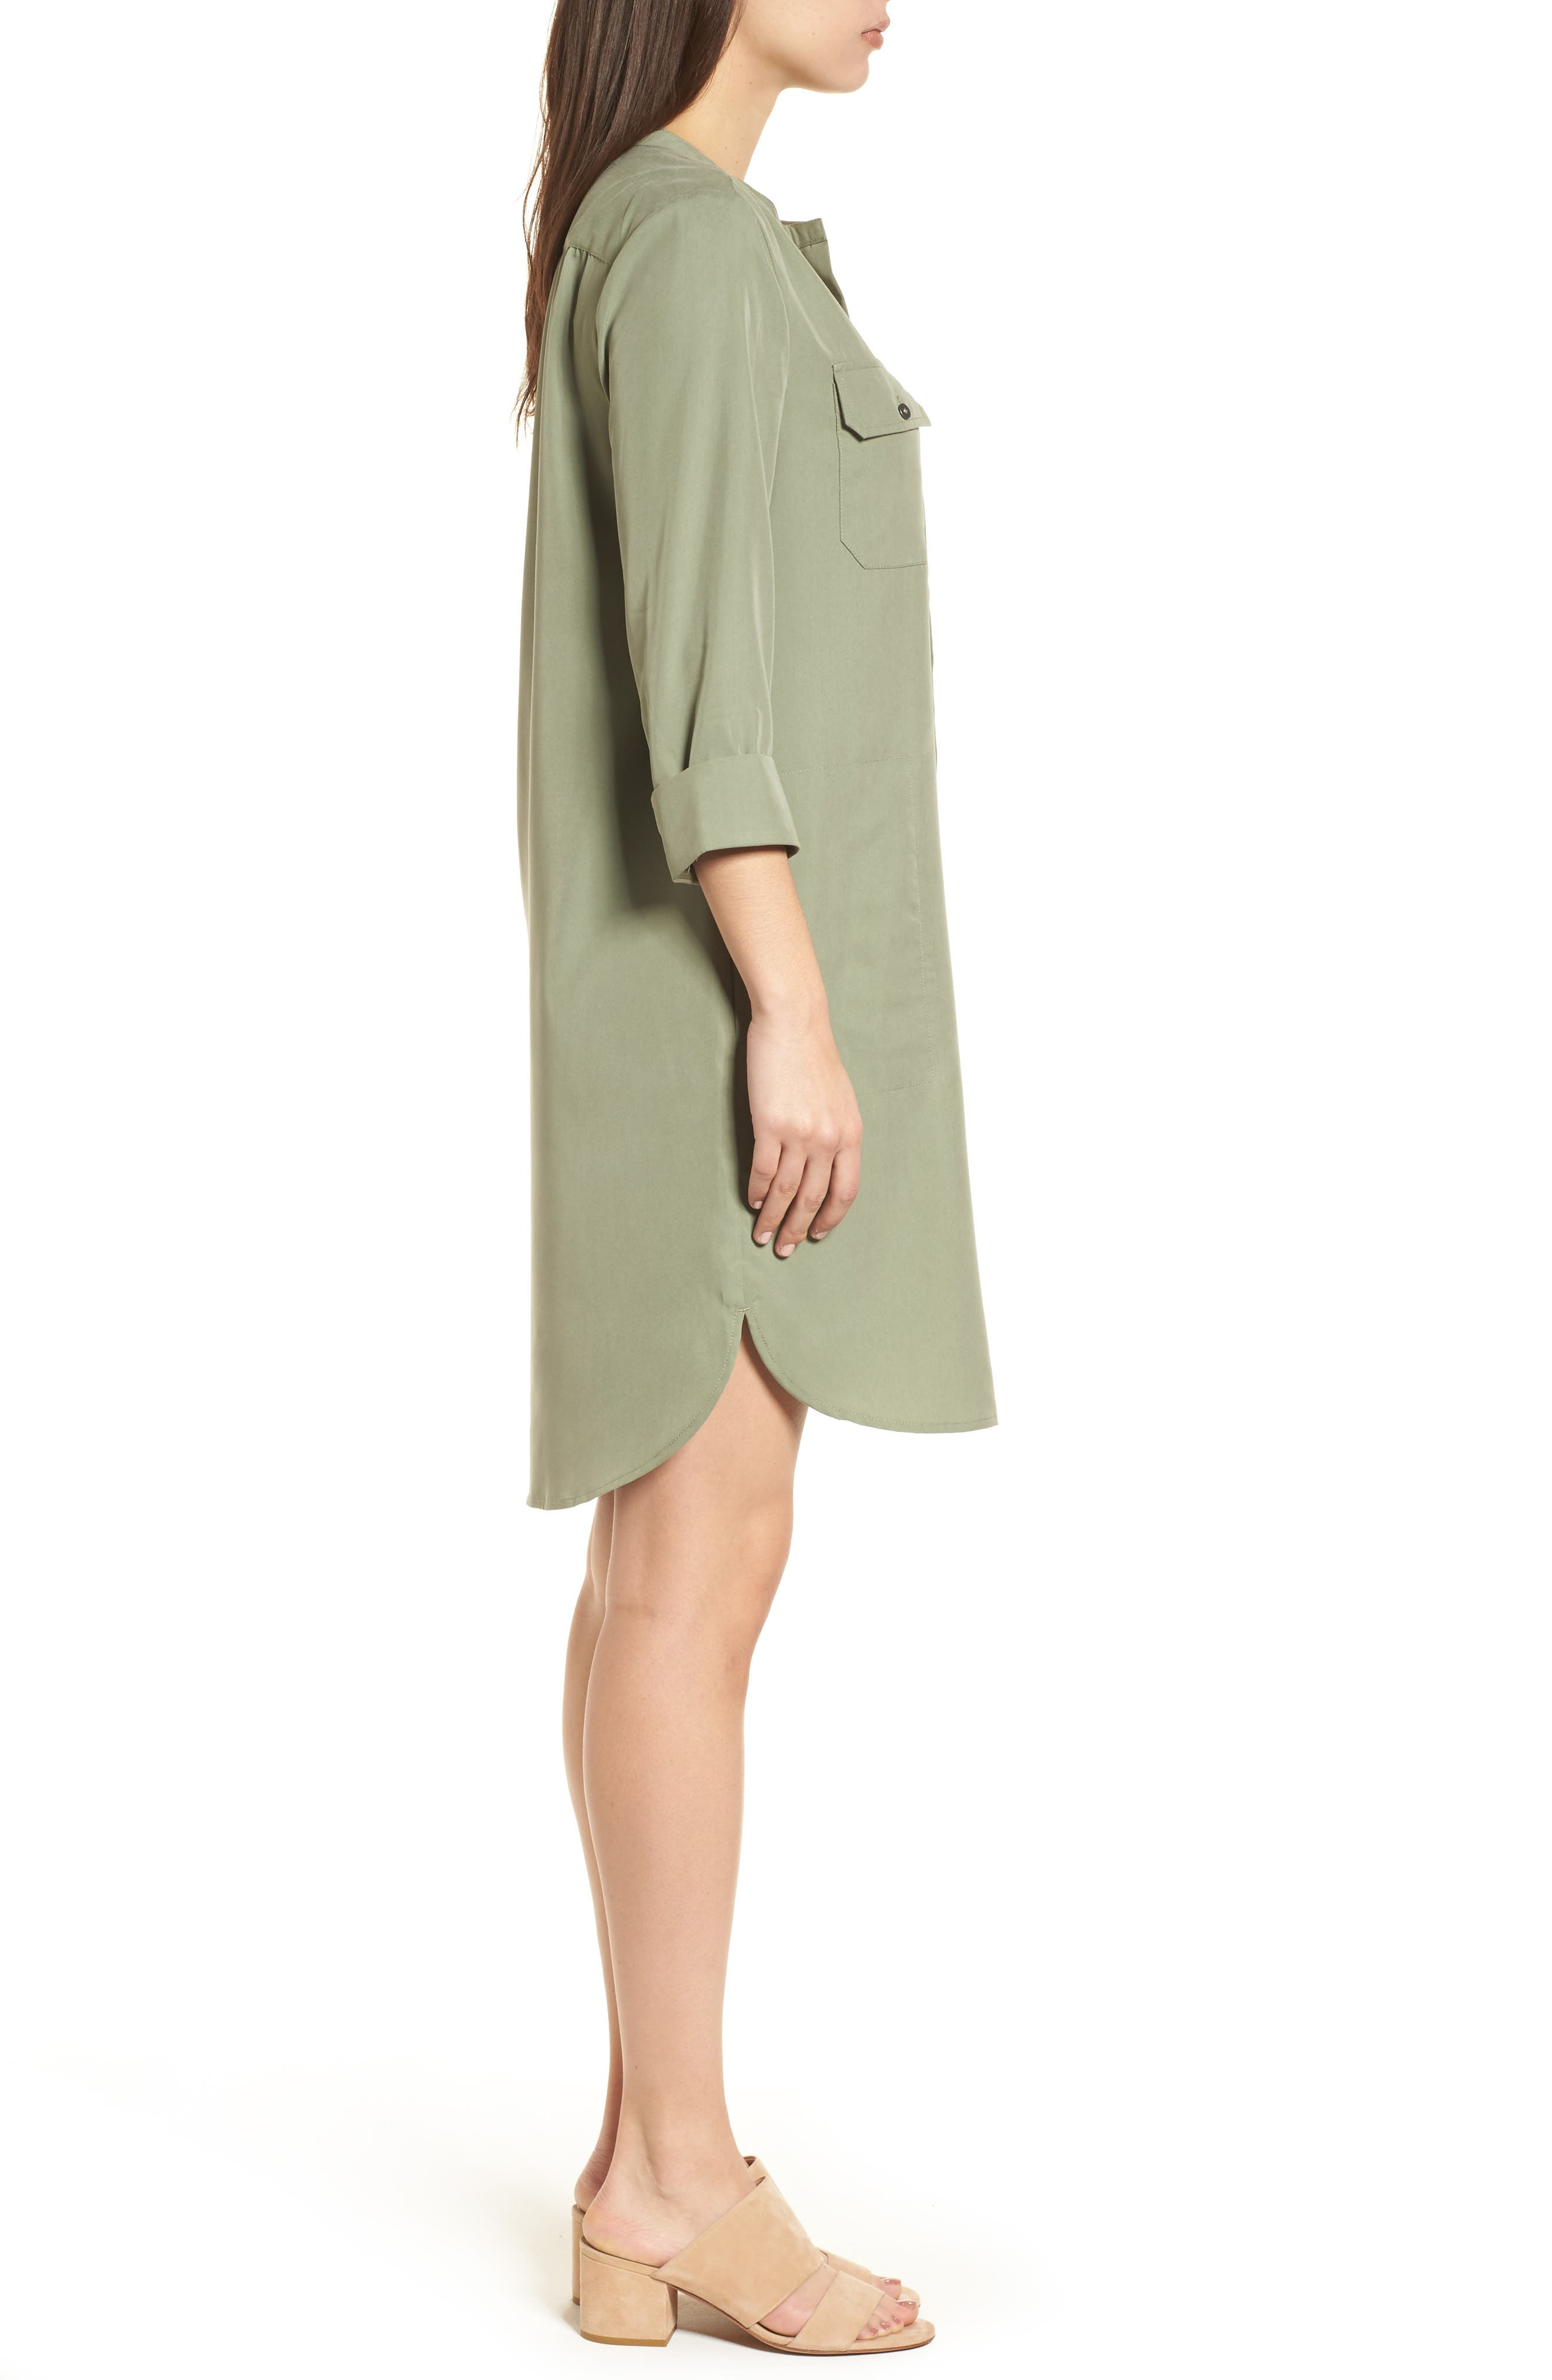 Wanderlust Shirtdress,                             Alternate thumbnail 3, color,                             Spring Moss